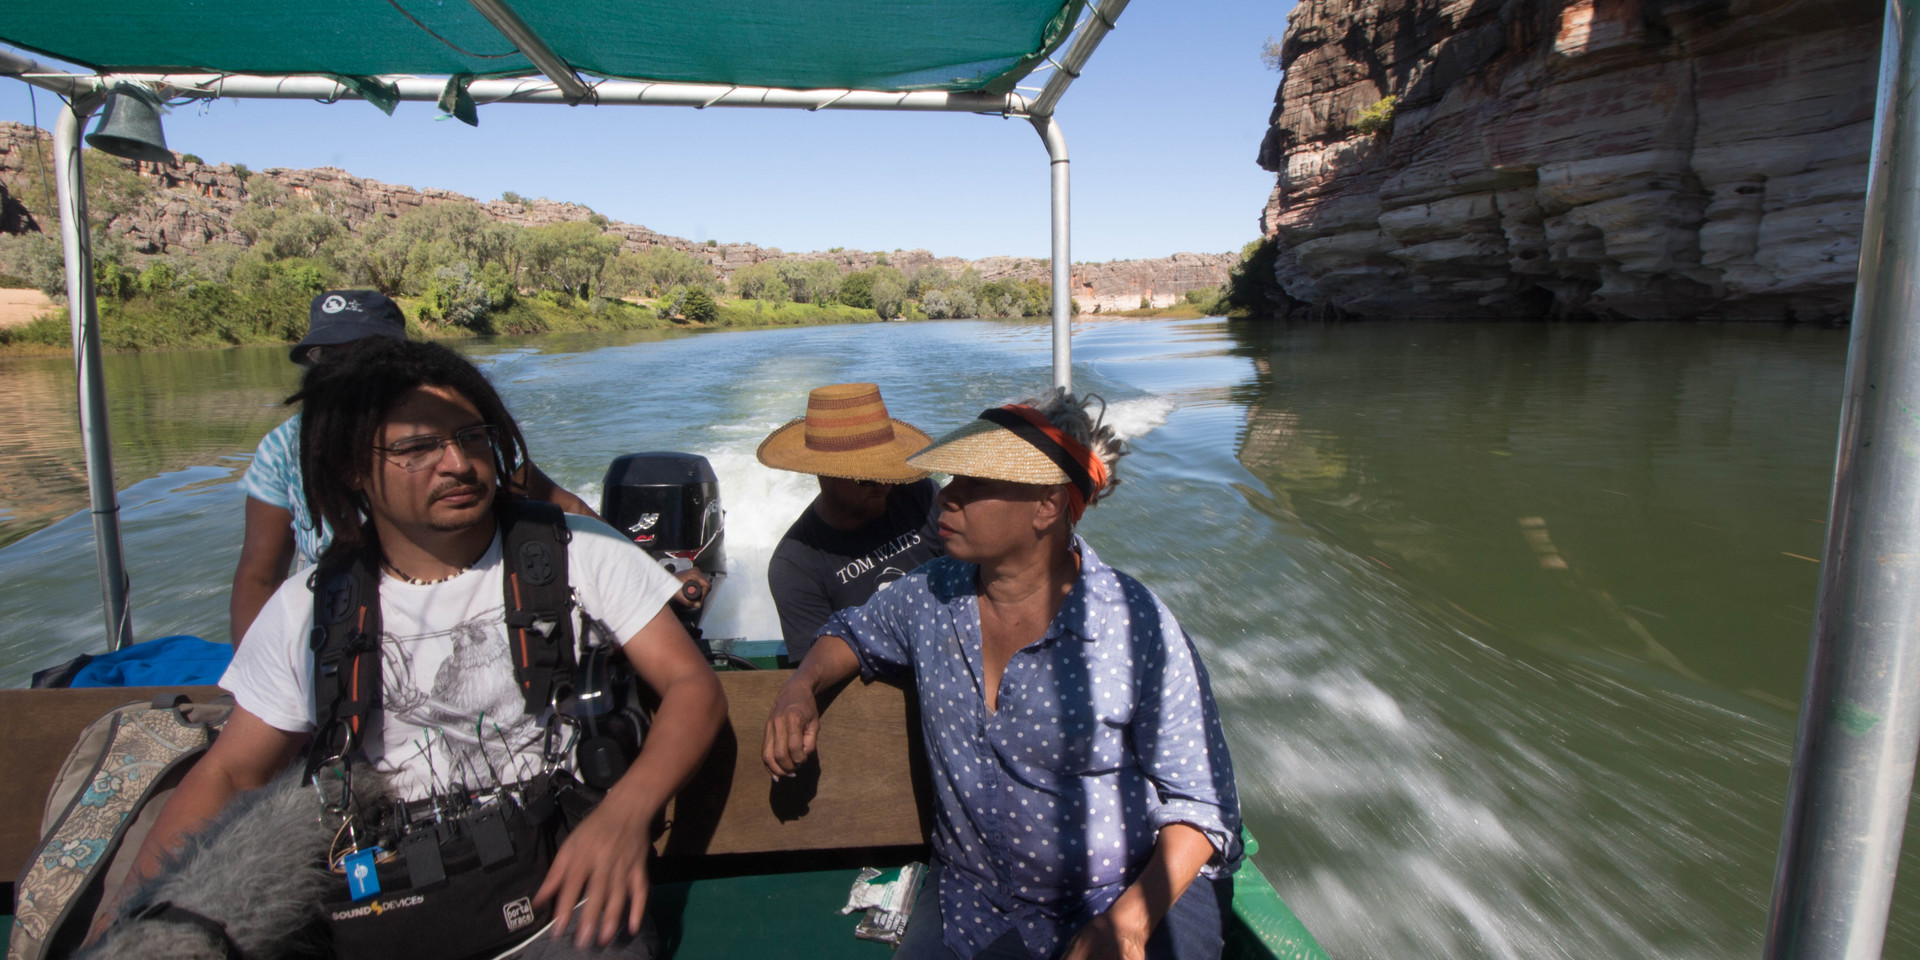 MIC THE BOAT, RECORD SOUND FITZROY CROSSING RIVER